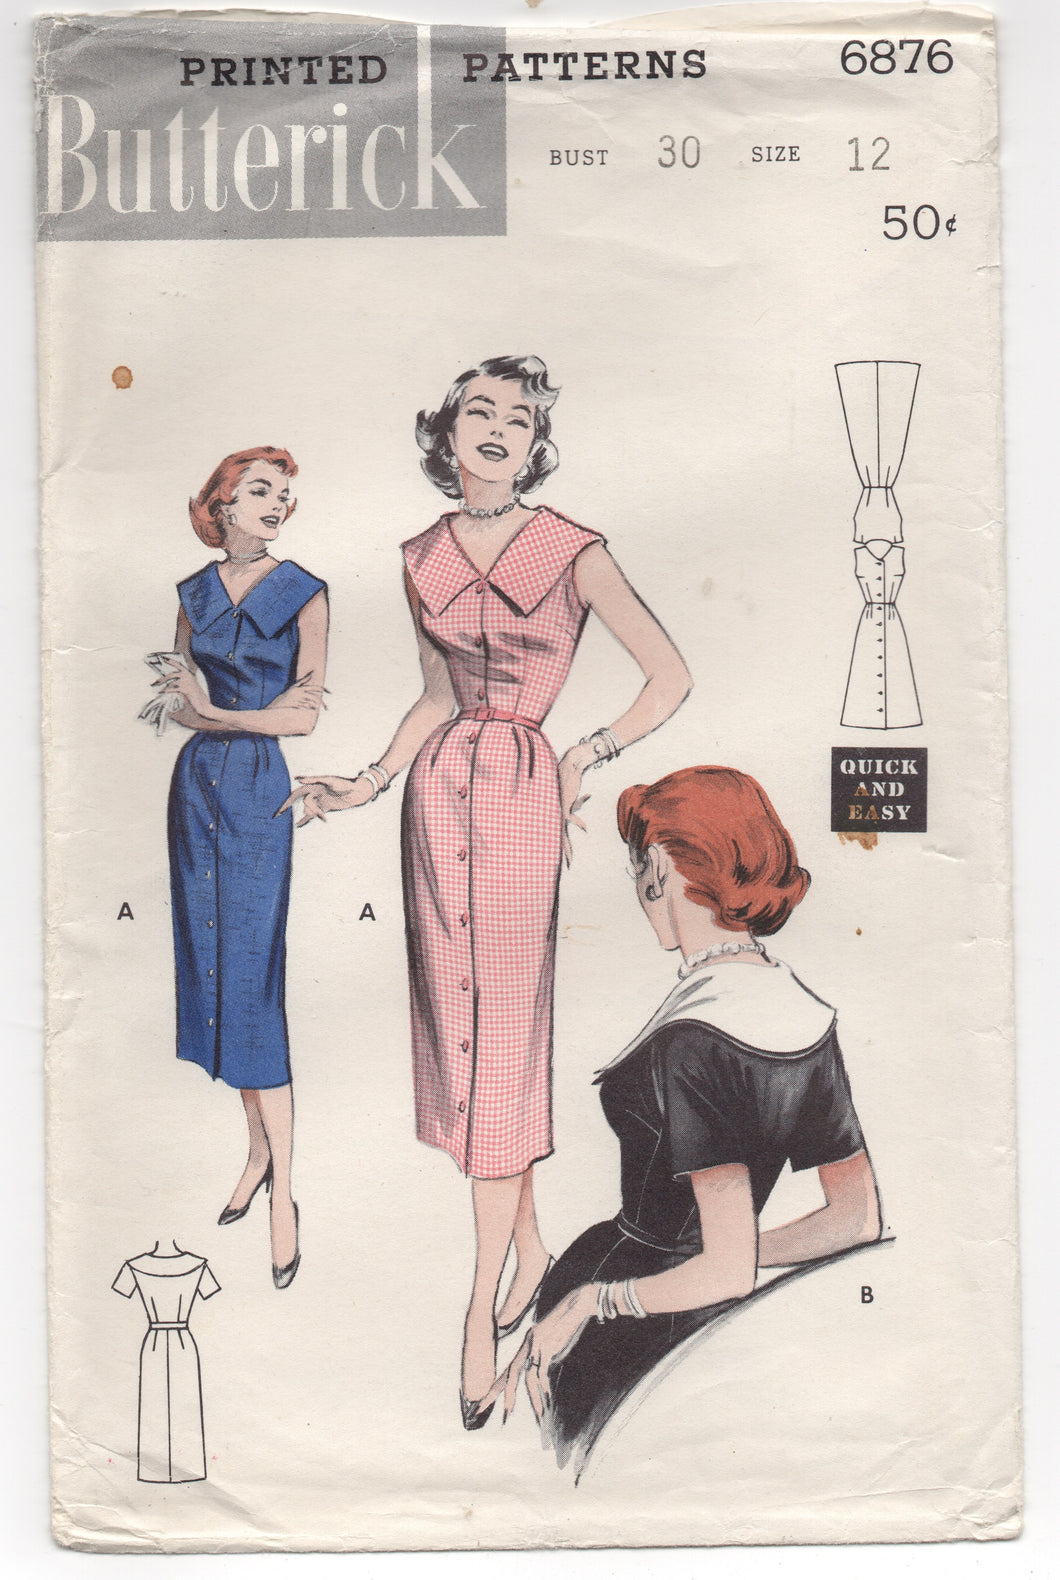 1950's Butterick One Piece Button up Dress with Wide Collar - Bust 30